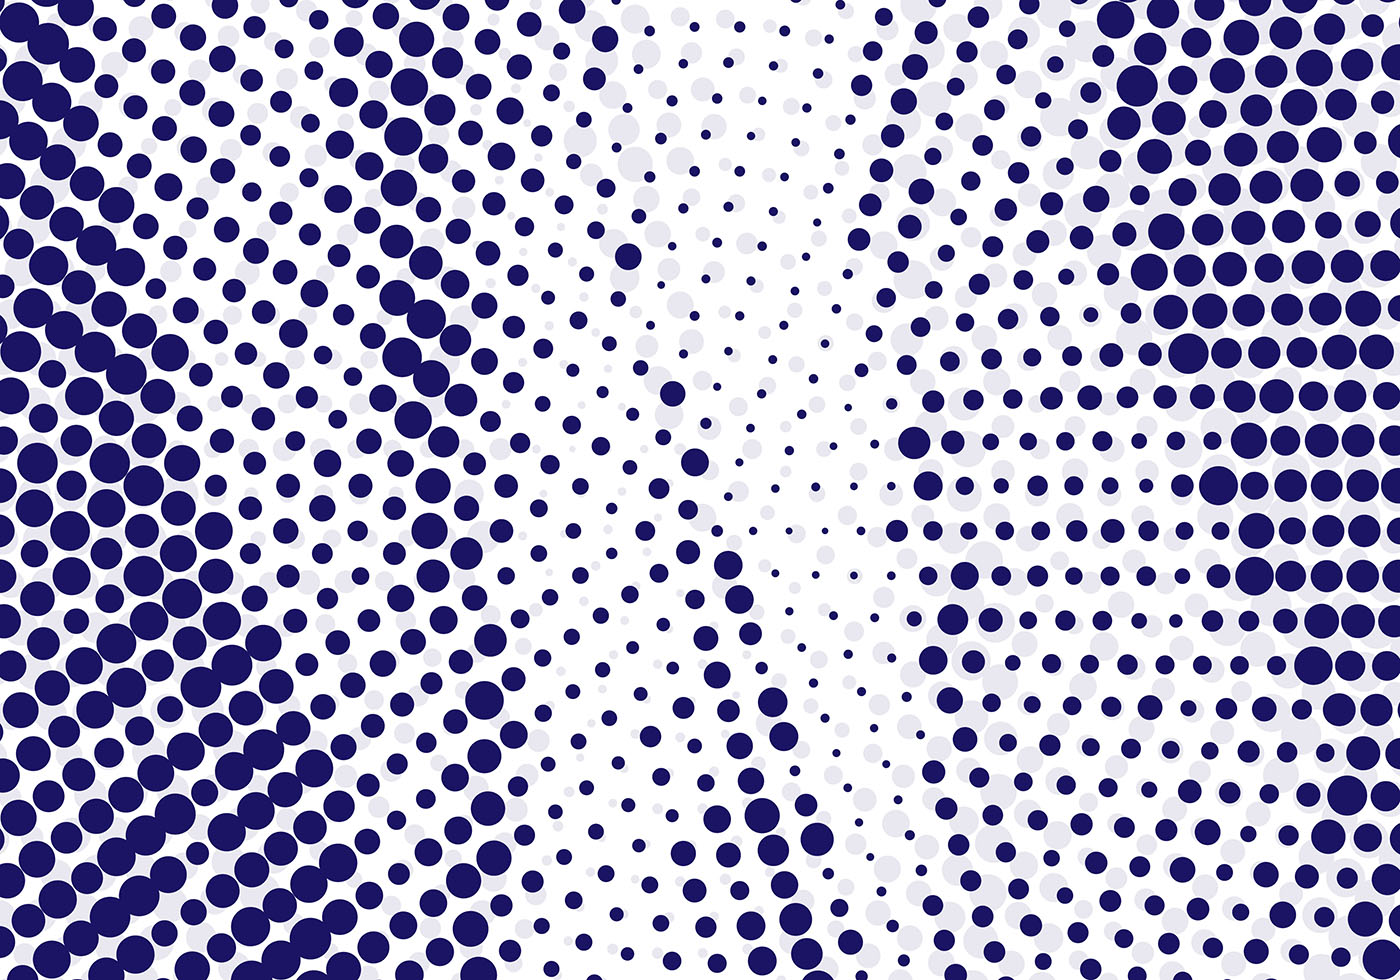 Free Vector Halftone Background